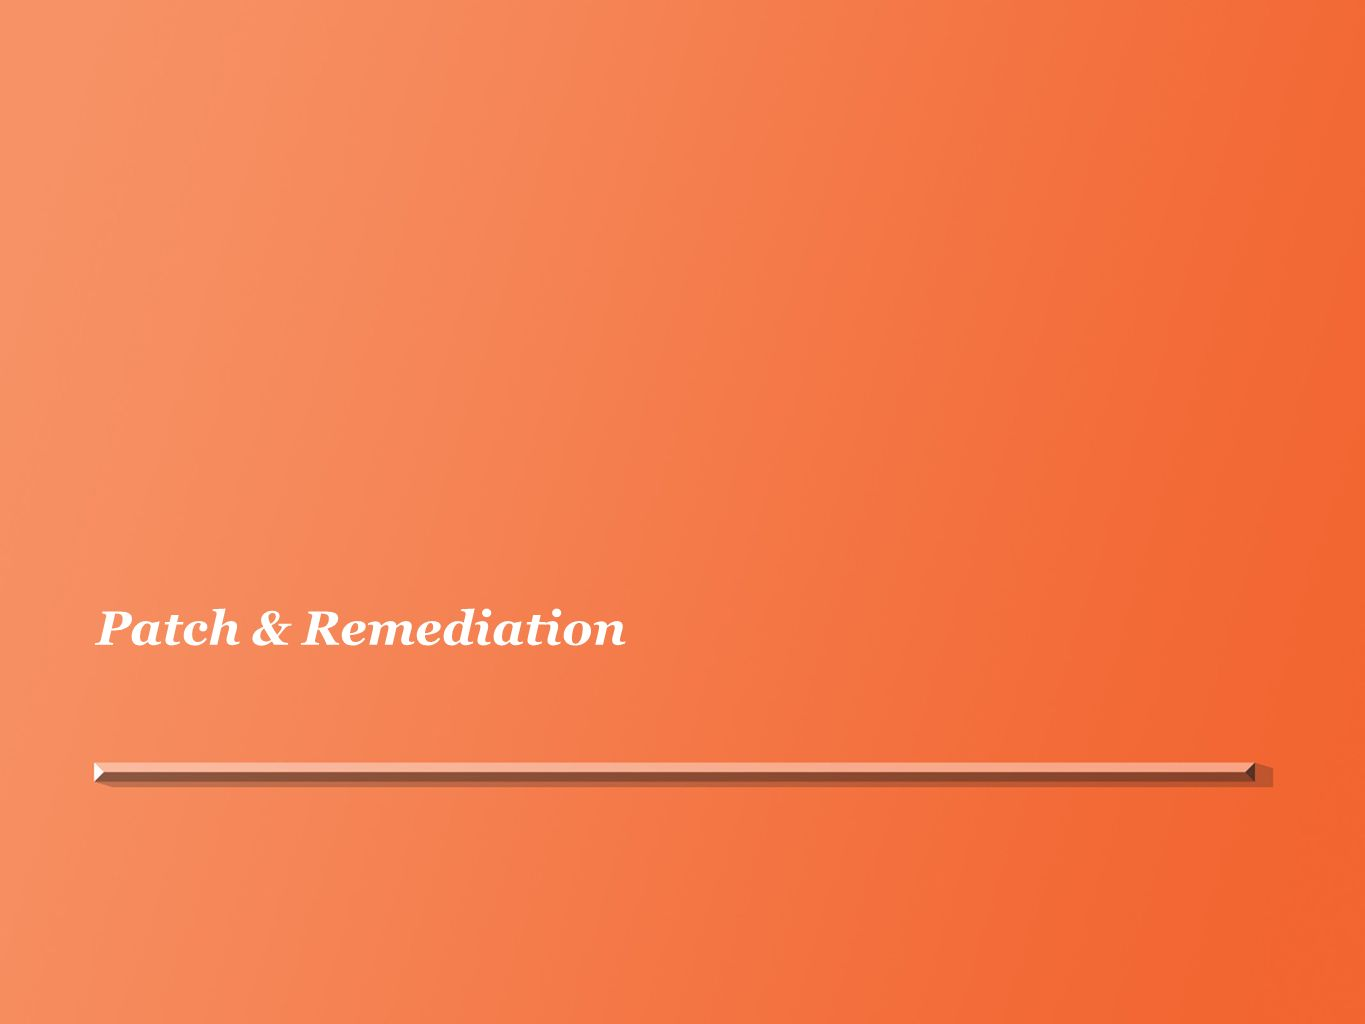 Patch & Remediation